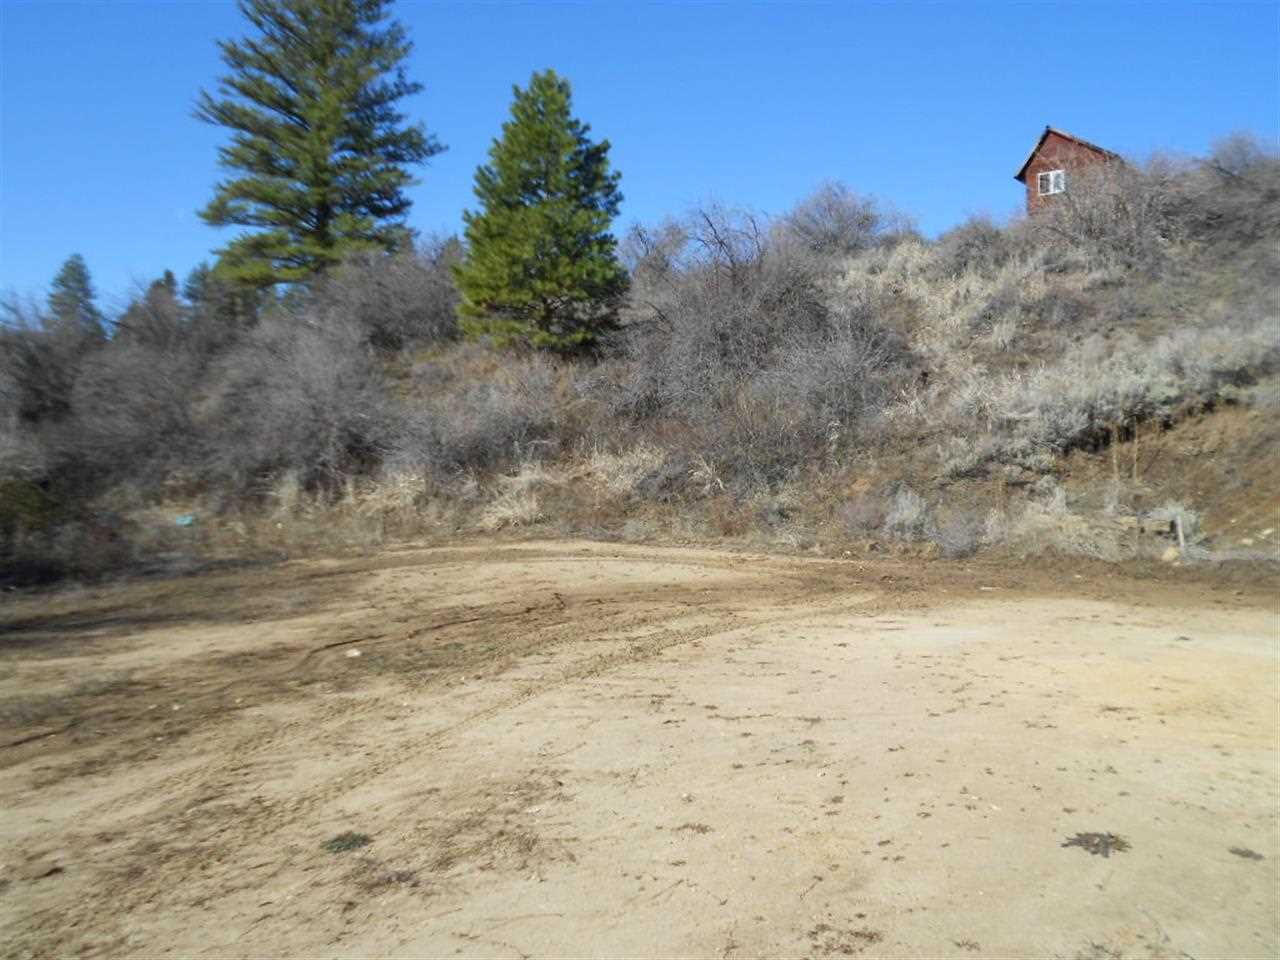 Lot 18 Clear Creek Estates # 13, Boise, Idaho 83716, Land For Sale, Price $46,000, 98682783